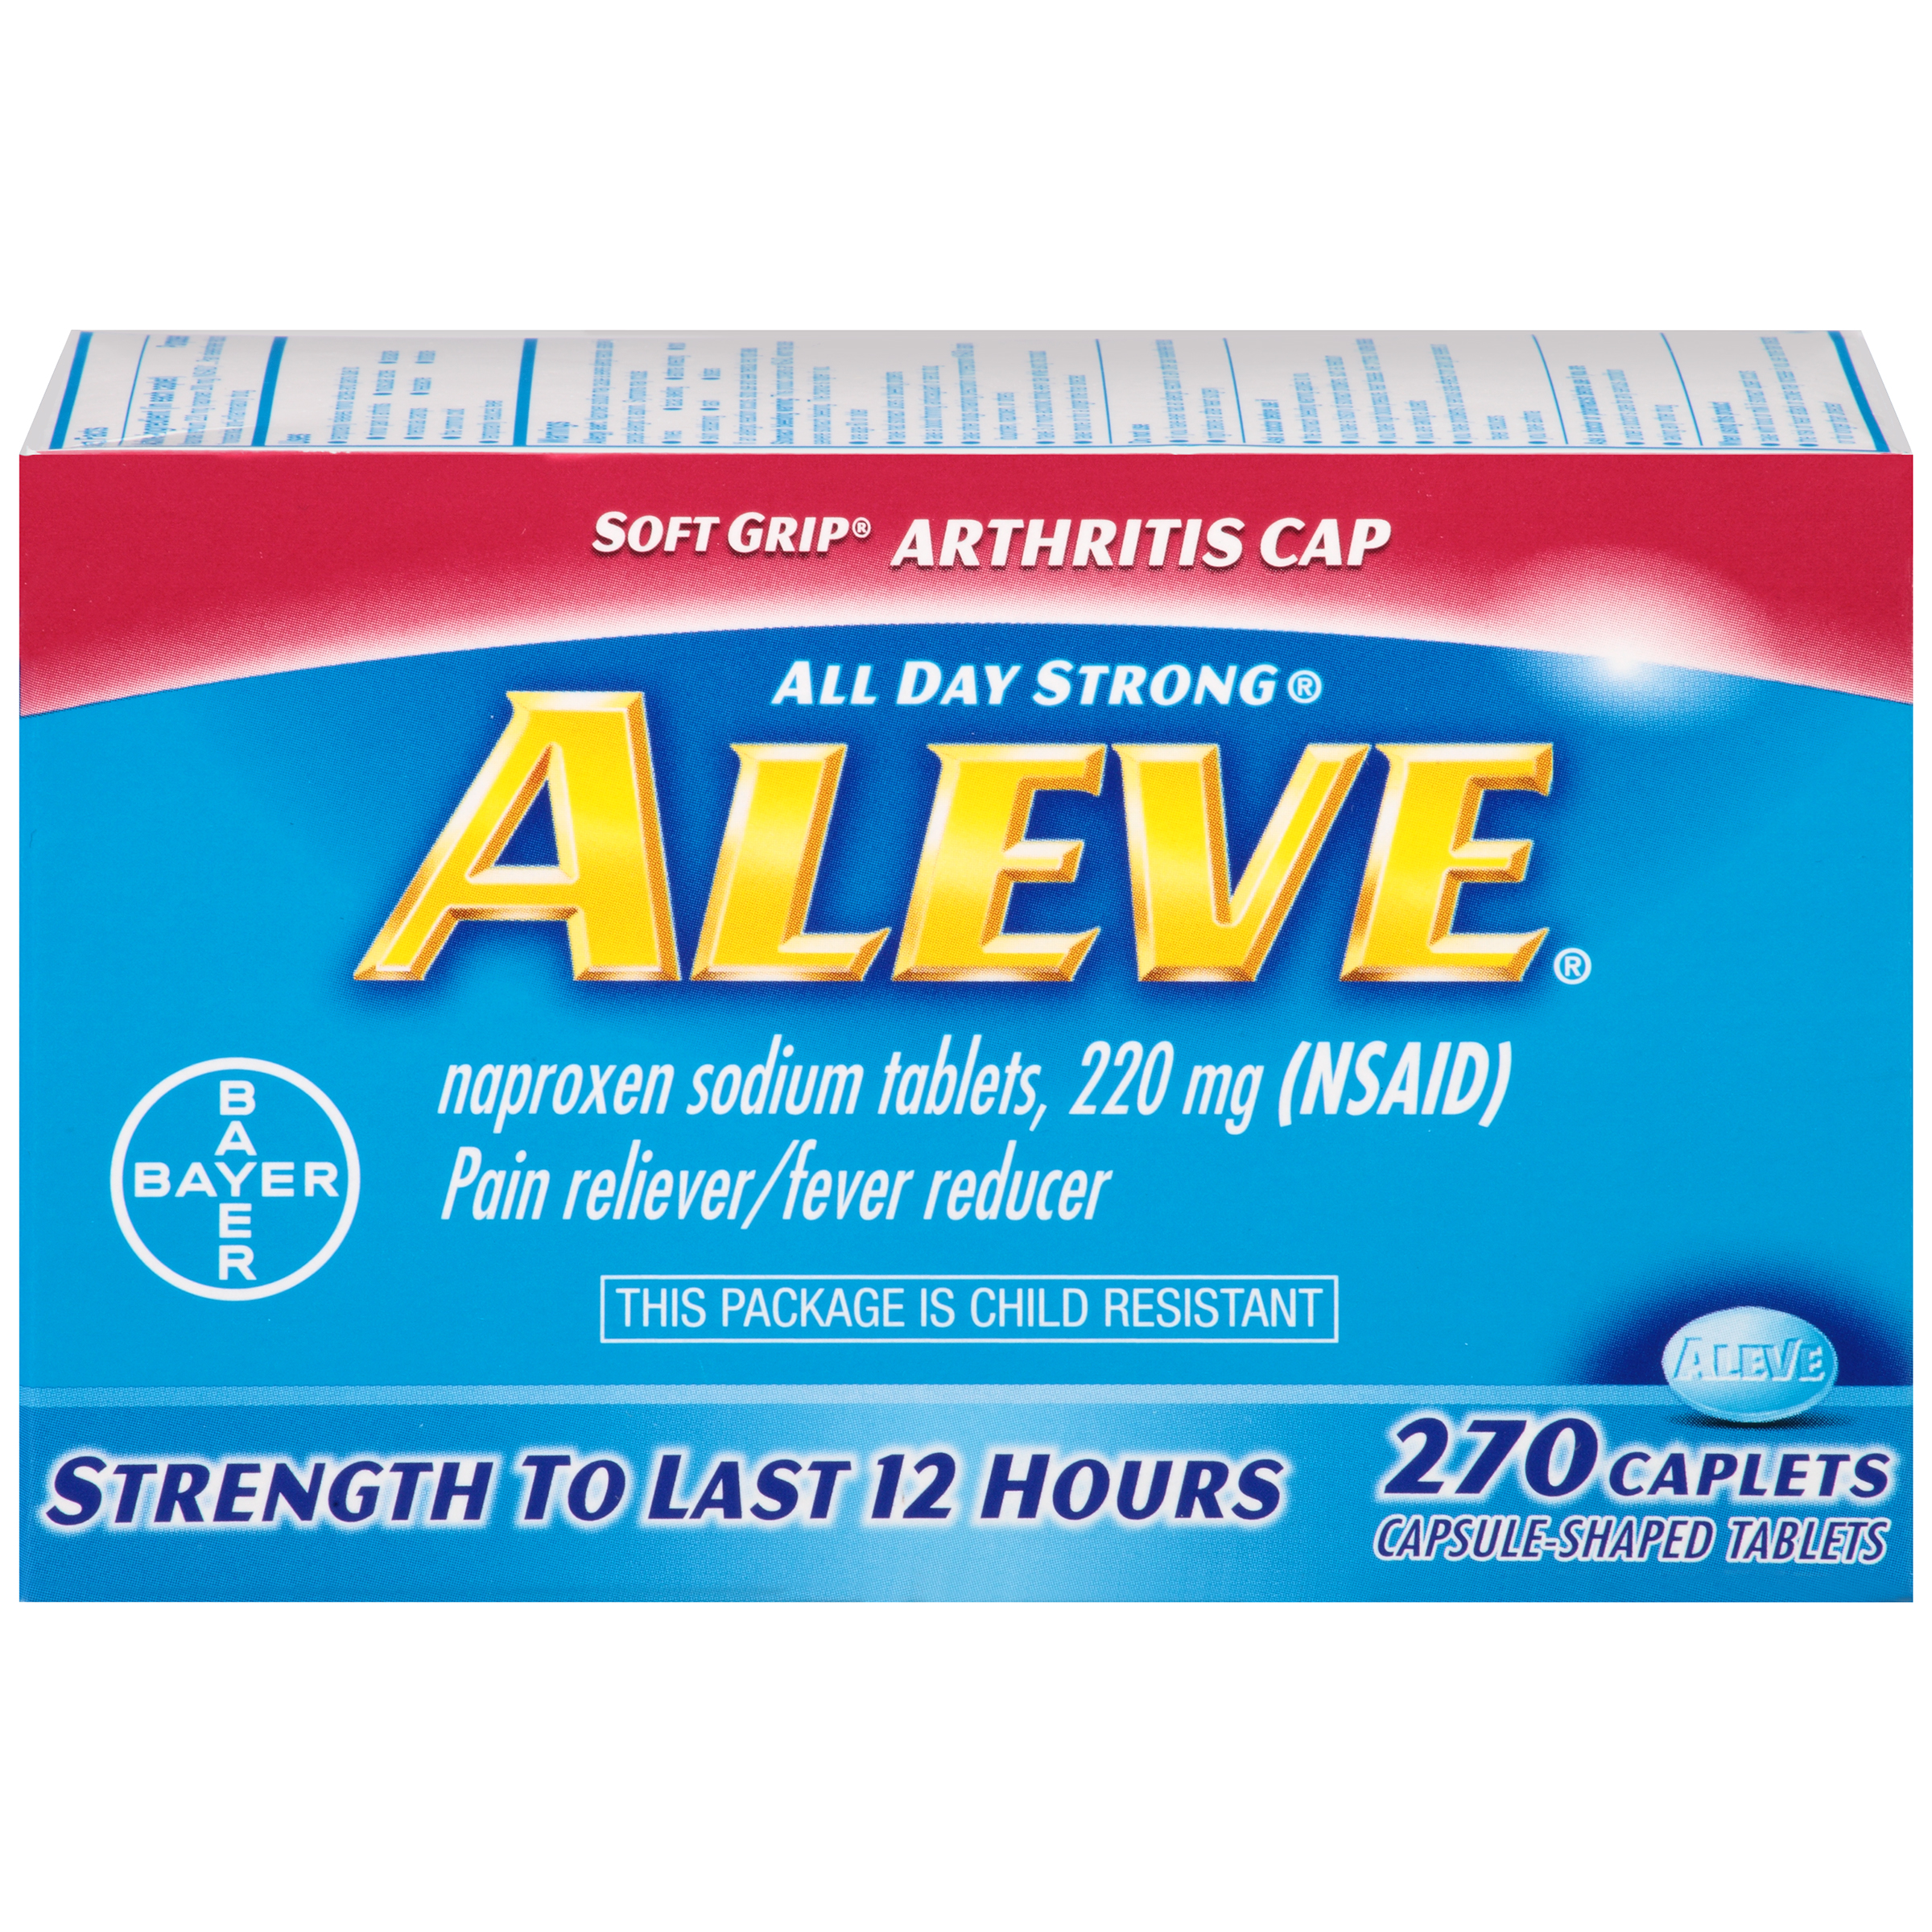 Aleve Easy Open Arthritis Cap Pain Reliever/Fever Reducer Naproxen Sodium Caplets, 220 mg, 100 Ct